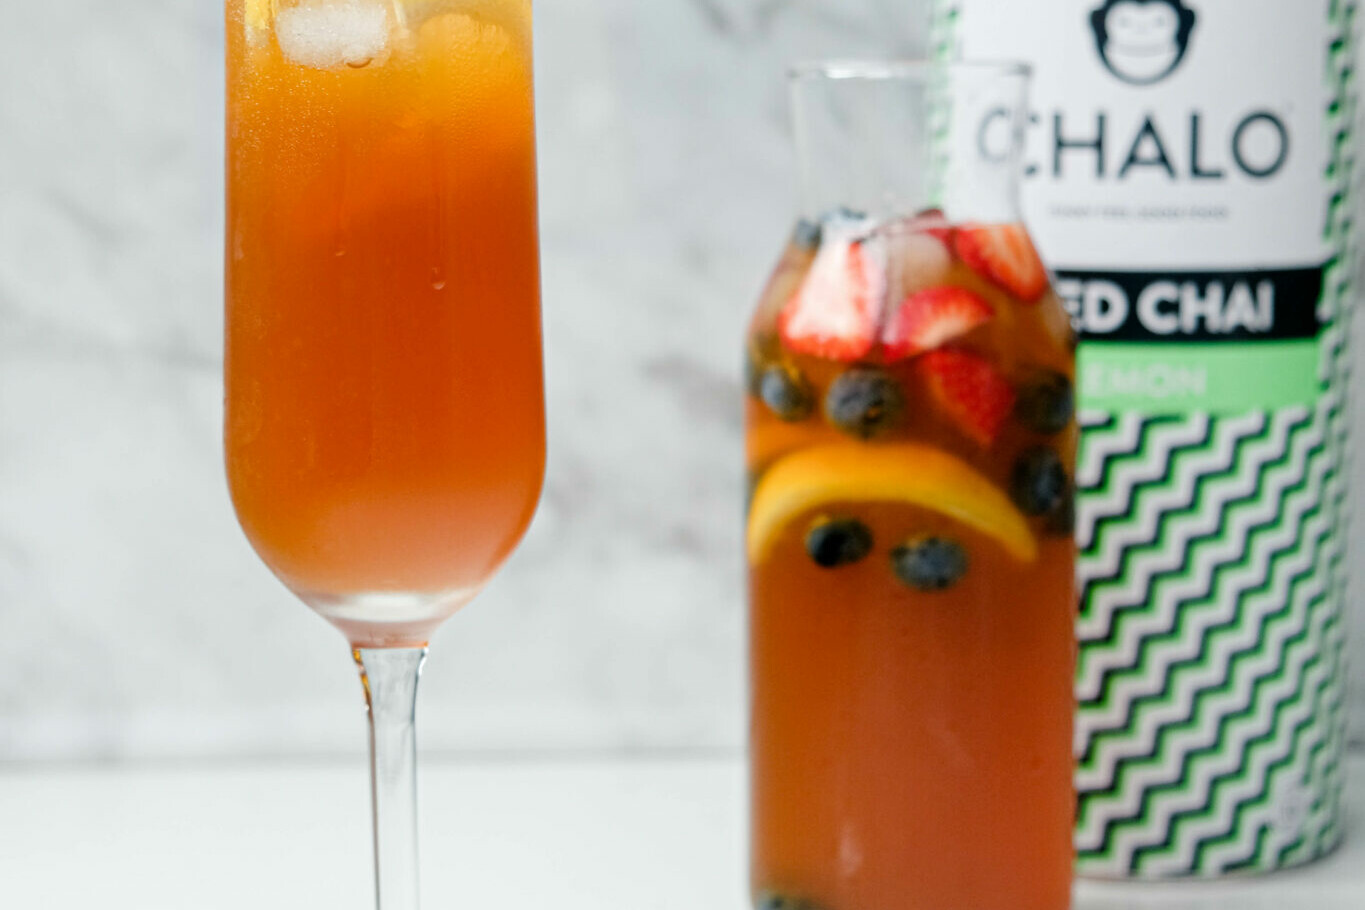 The Chalo Lemon Iced Chai Cocktail